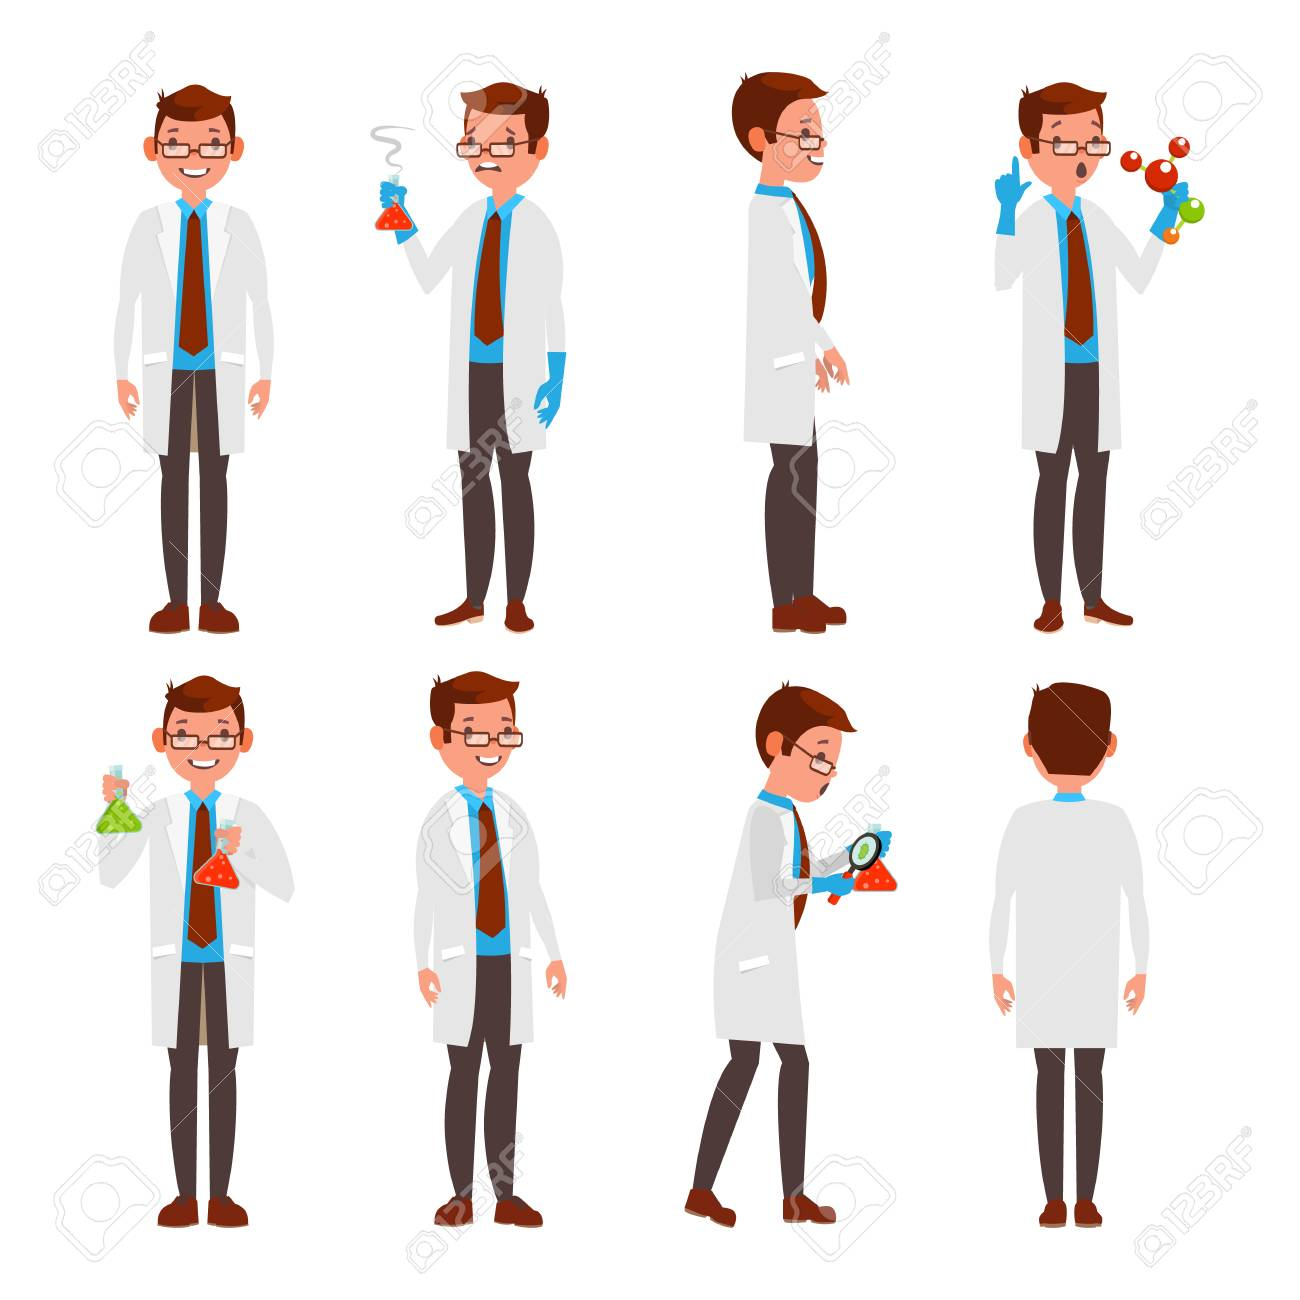 classic scientist vector science experiment research and exploration royalty free cliparts vectors and stock illustration image 90490871 classic scientist vector science experiment research and exploration